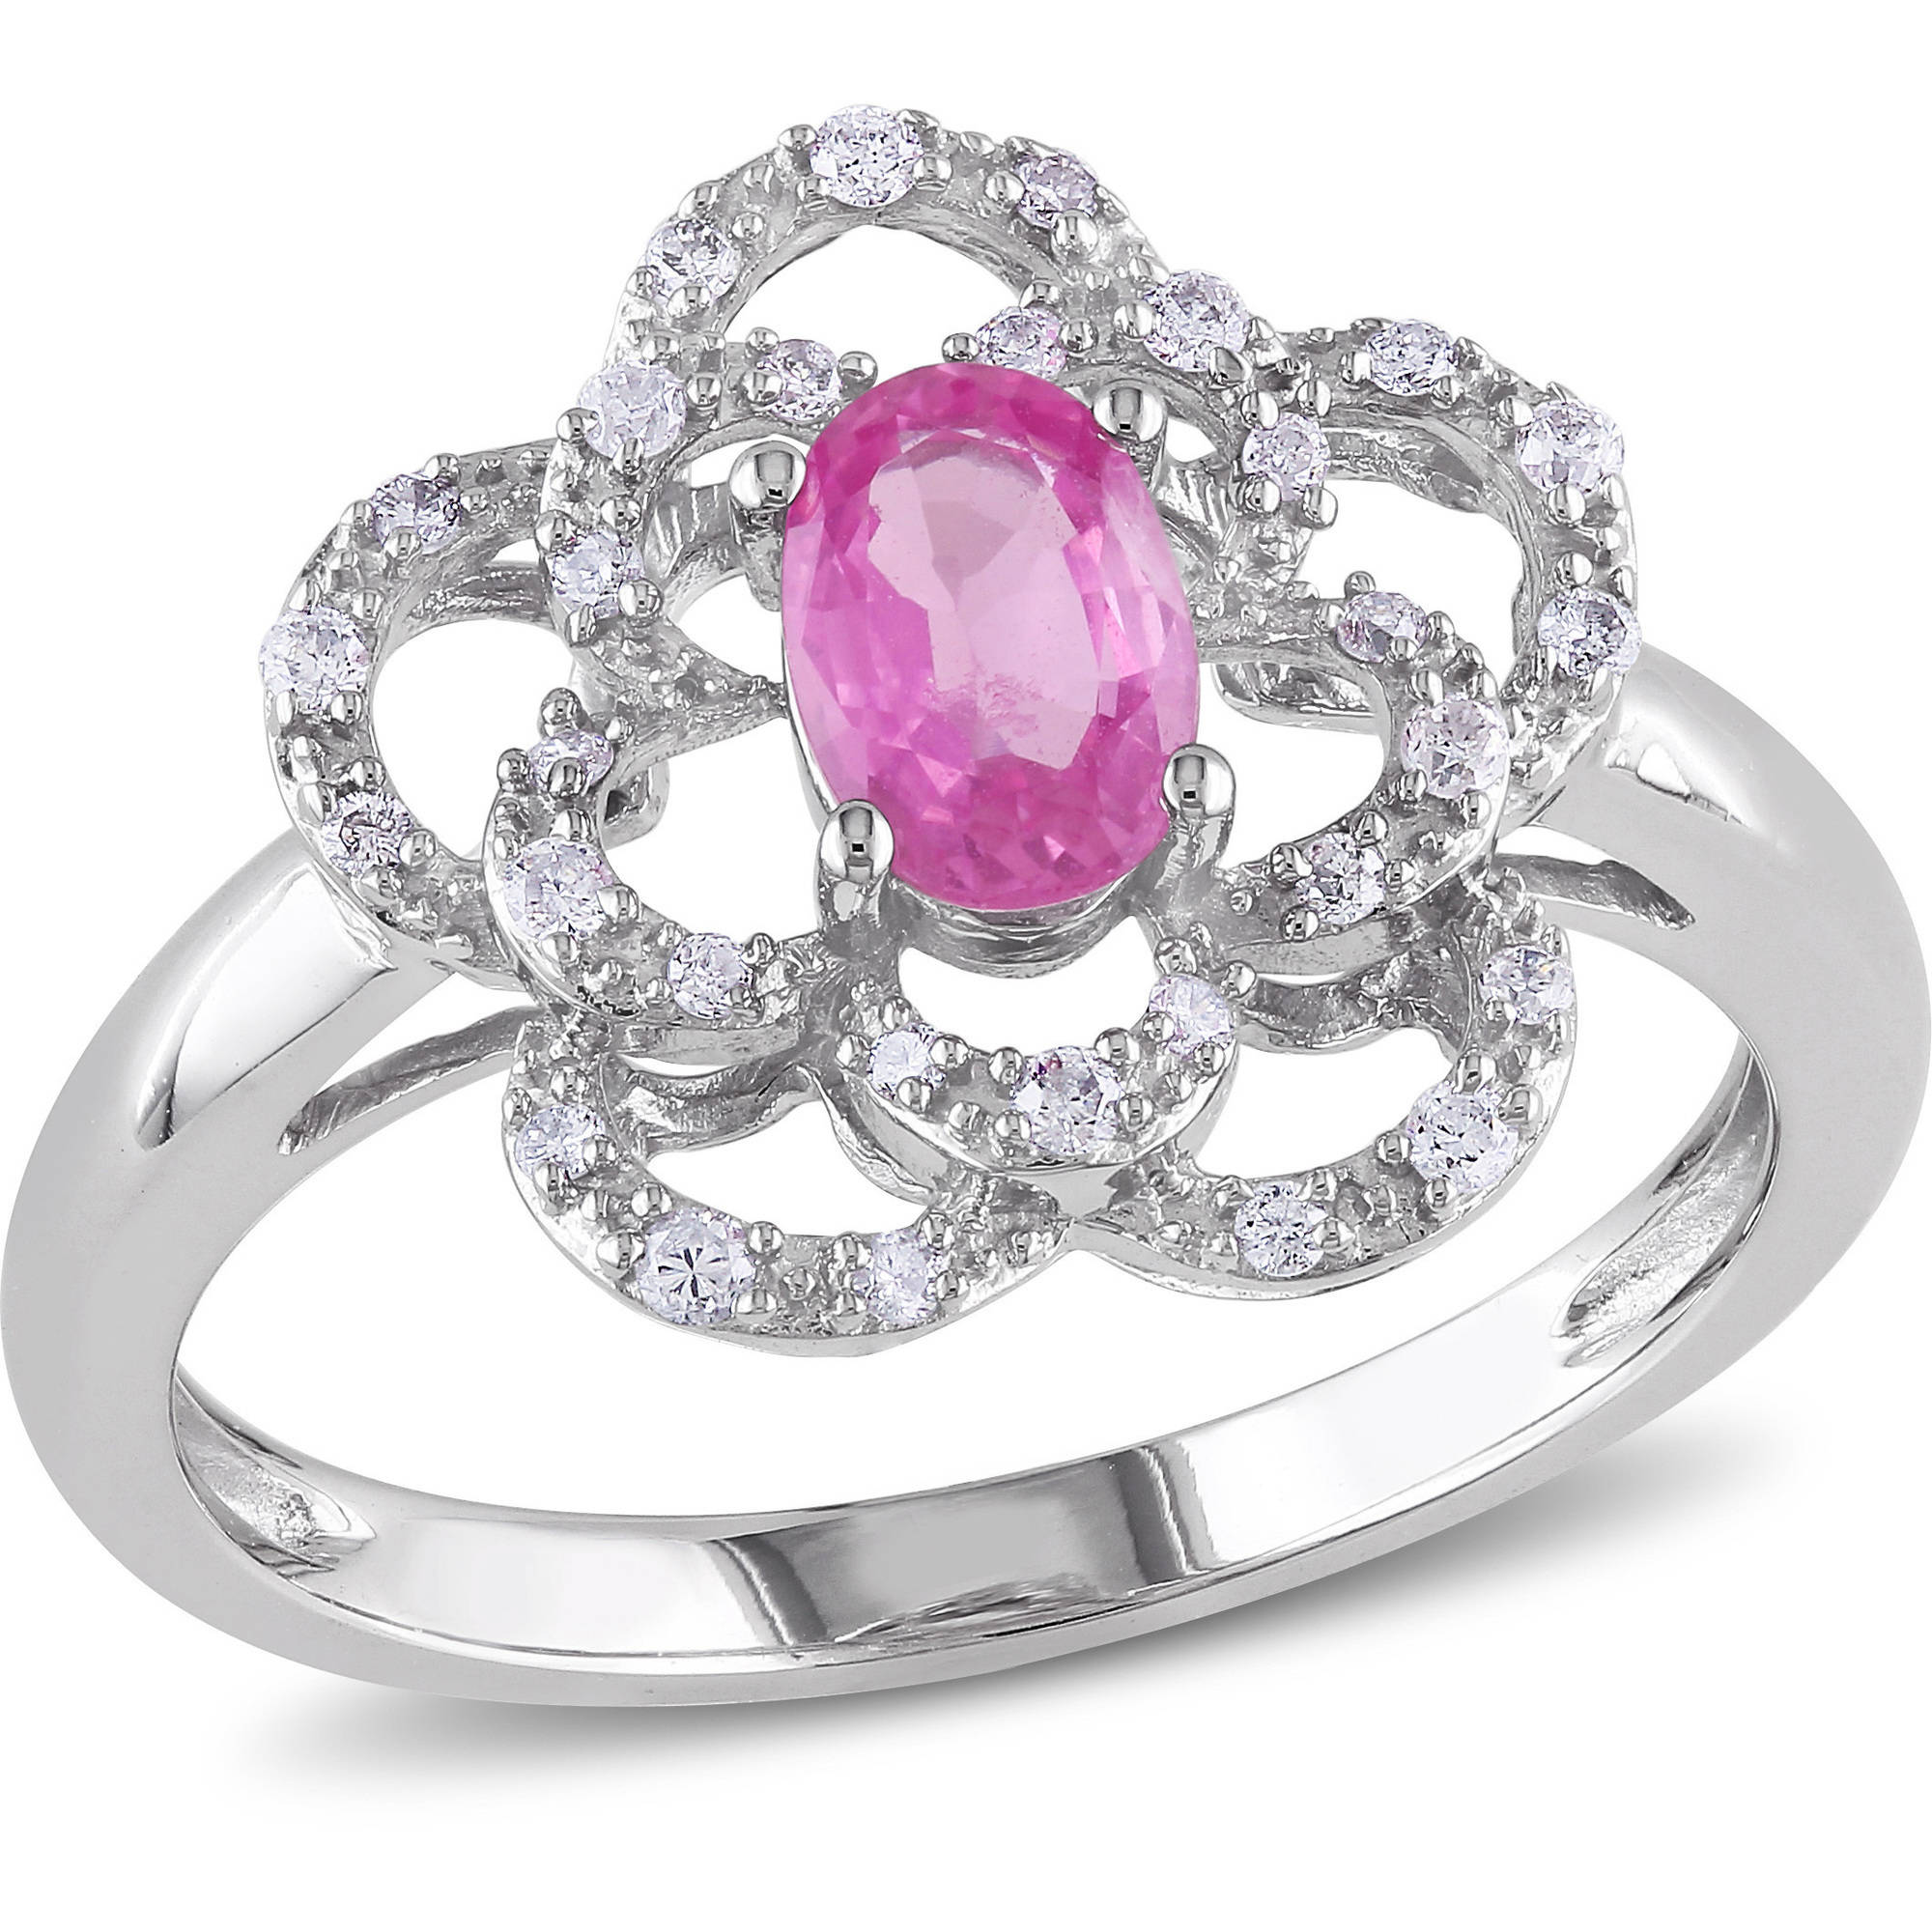 Tangelo 1 2 Carat T.G.W. Oval-Cut Pink Sapphire and 1 7 Carat T.W. Round-Cut Diamond 14kt White Gold Floral Ring by Tangelo